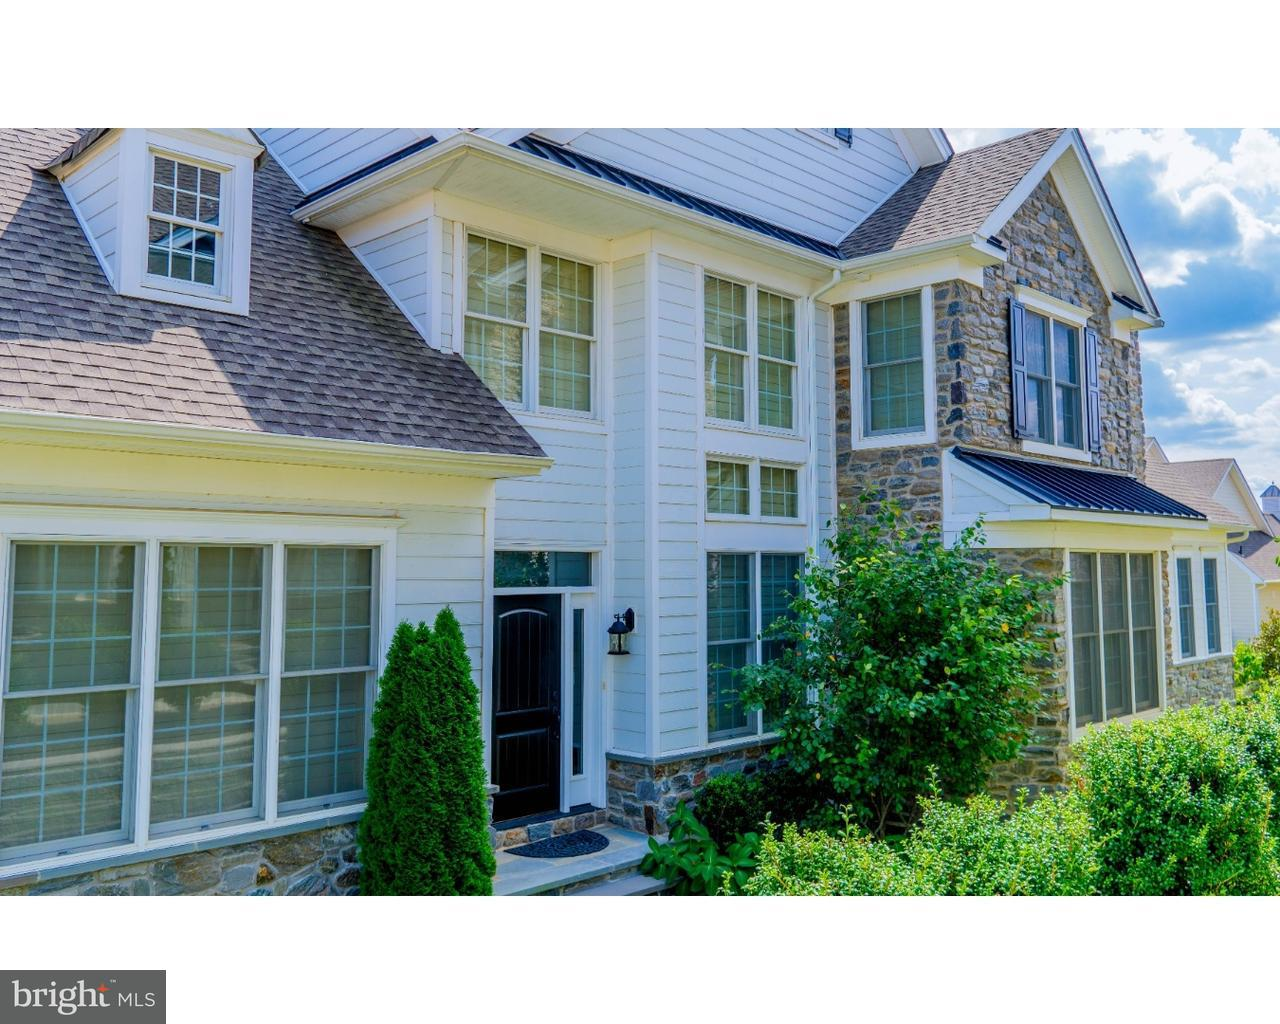 304 Sunny Brook Lane Newtown Square, PA 19073